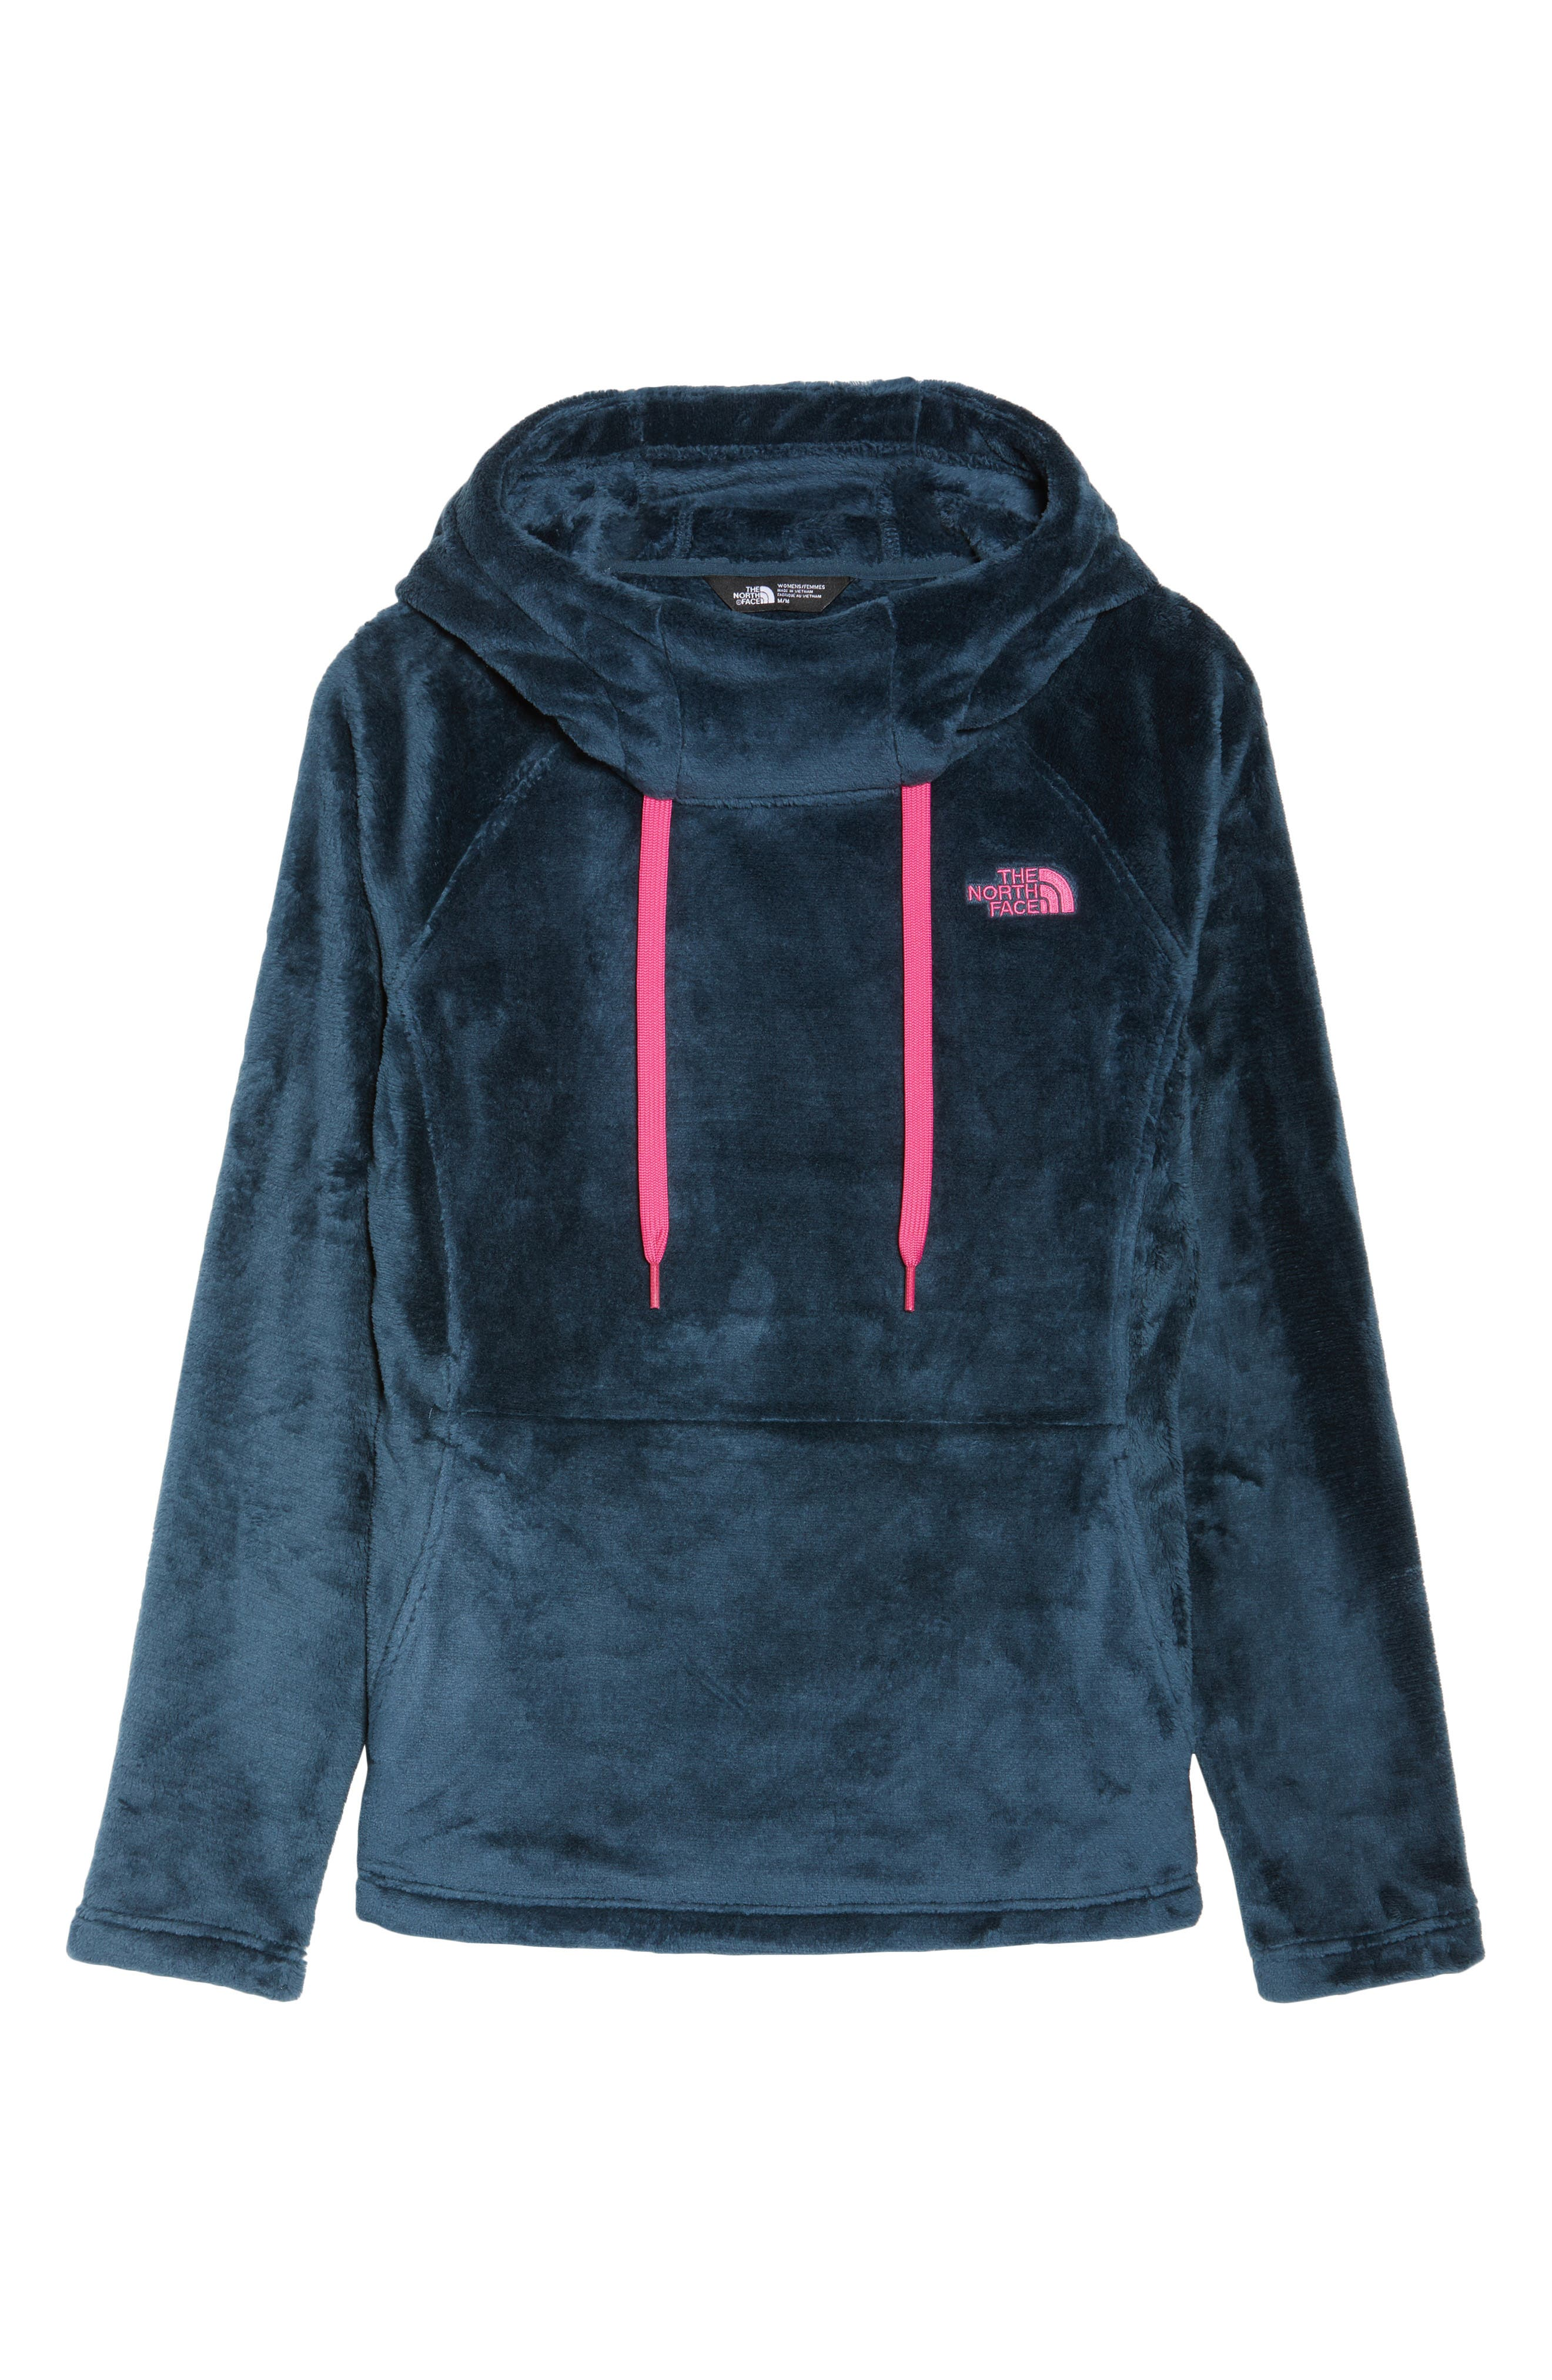 Bellarine Hoodie,                             Main thumbnail 1, color,                             Ink Blue